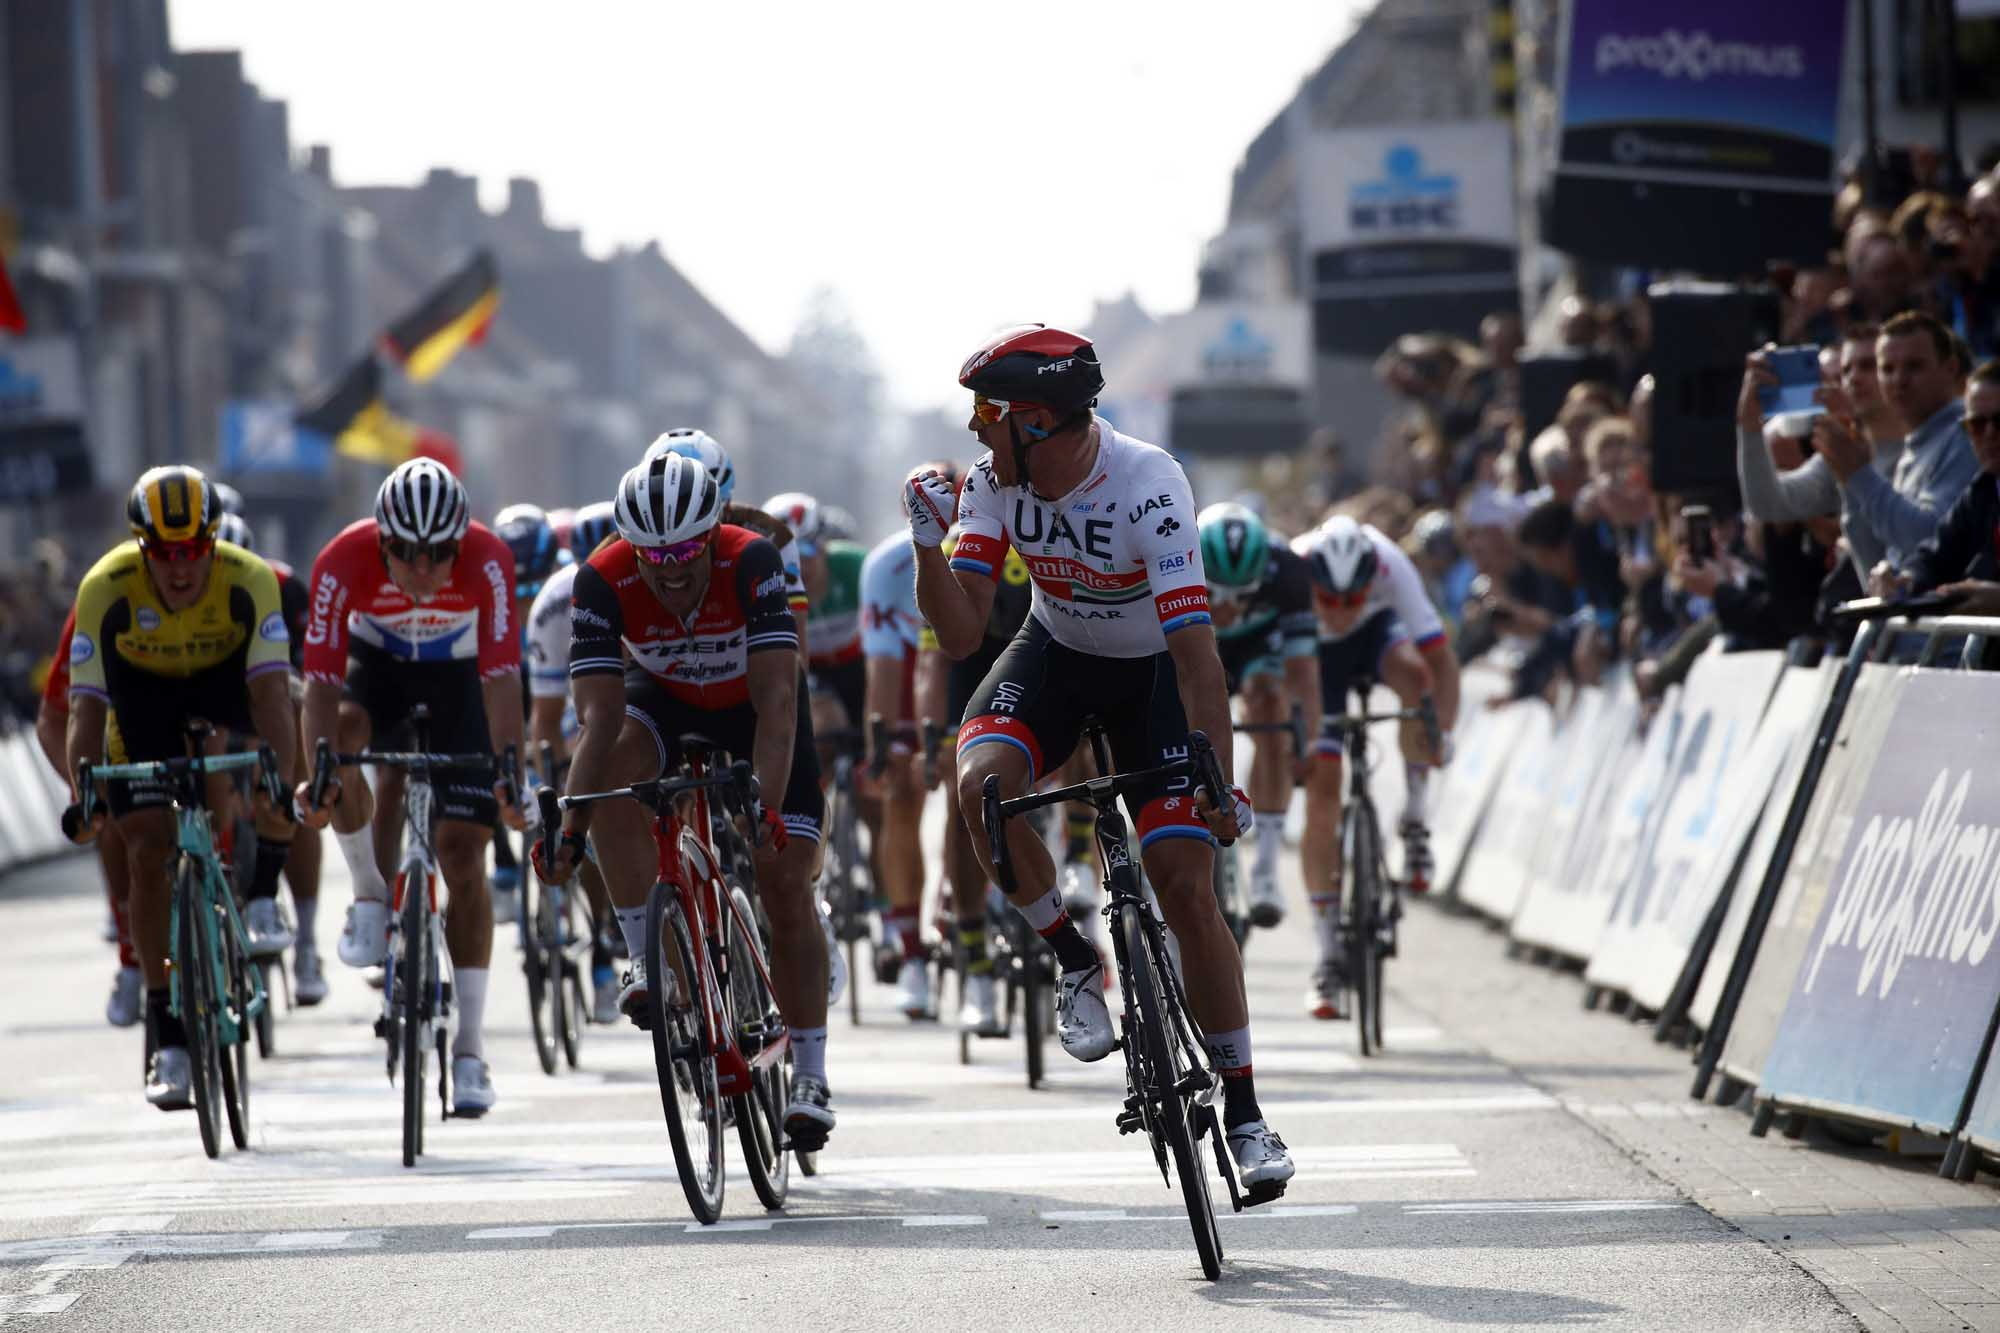 Gent-Wevelgem in Flanders Fields 2019 - 81st Edition - Deinze - Wevelgem  251.5 km - 31/03/2019 - Alexander Kristoff (NOR - UAE - Team Emirates) - John Degenkolb (GER - Trek - Segafredo) - photo Luca Bettini/BettiniPhoto©2018